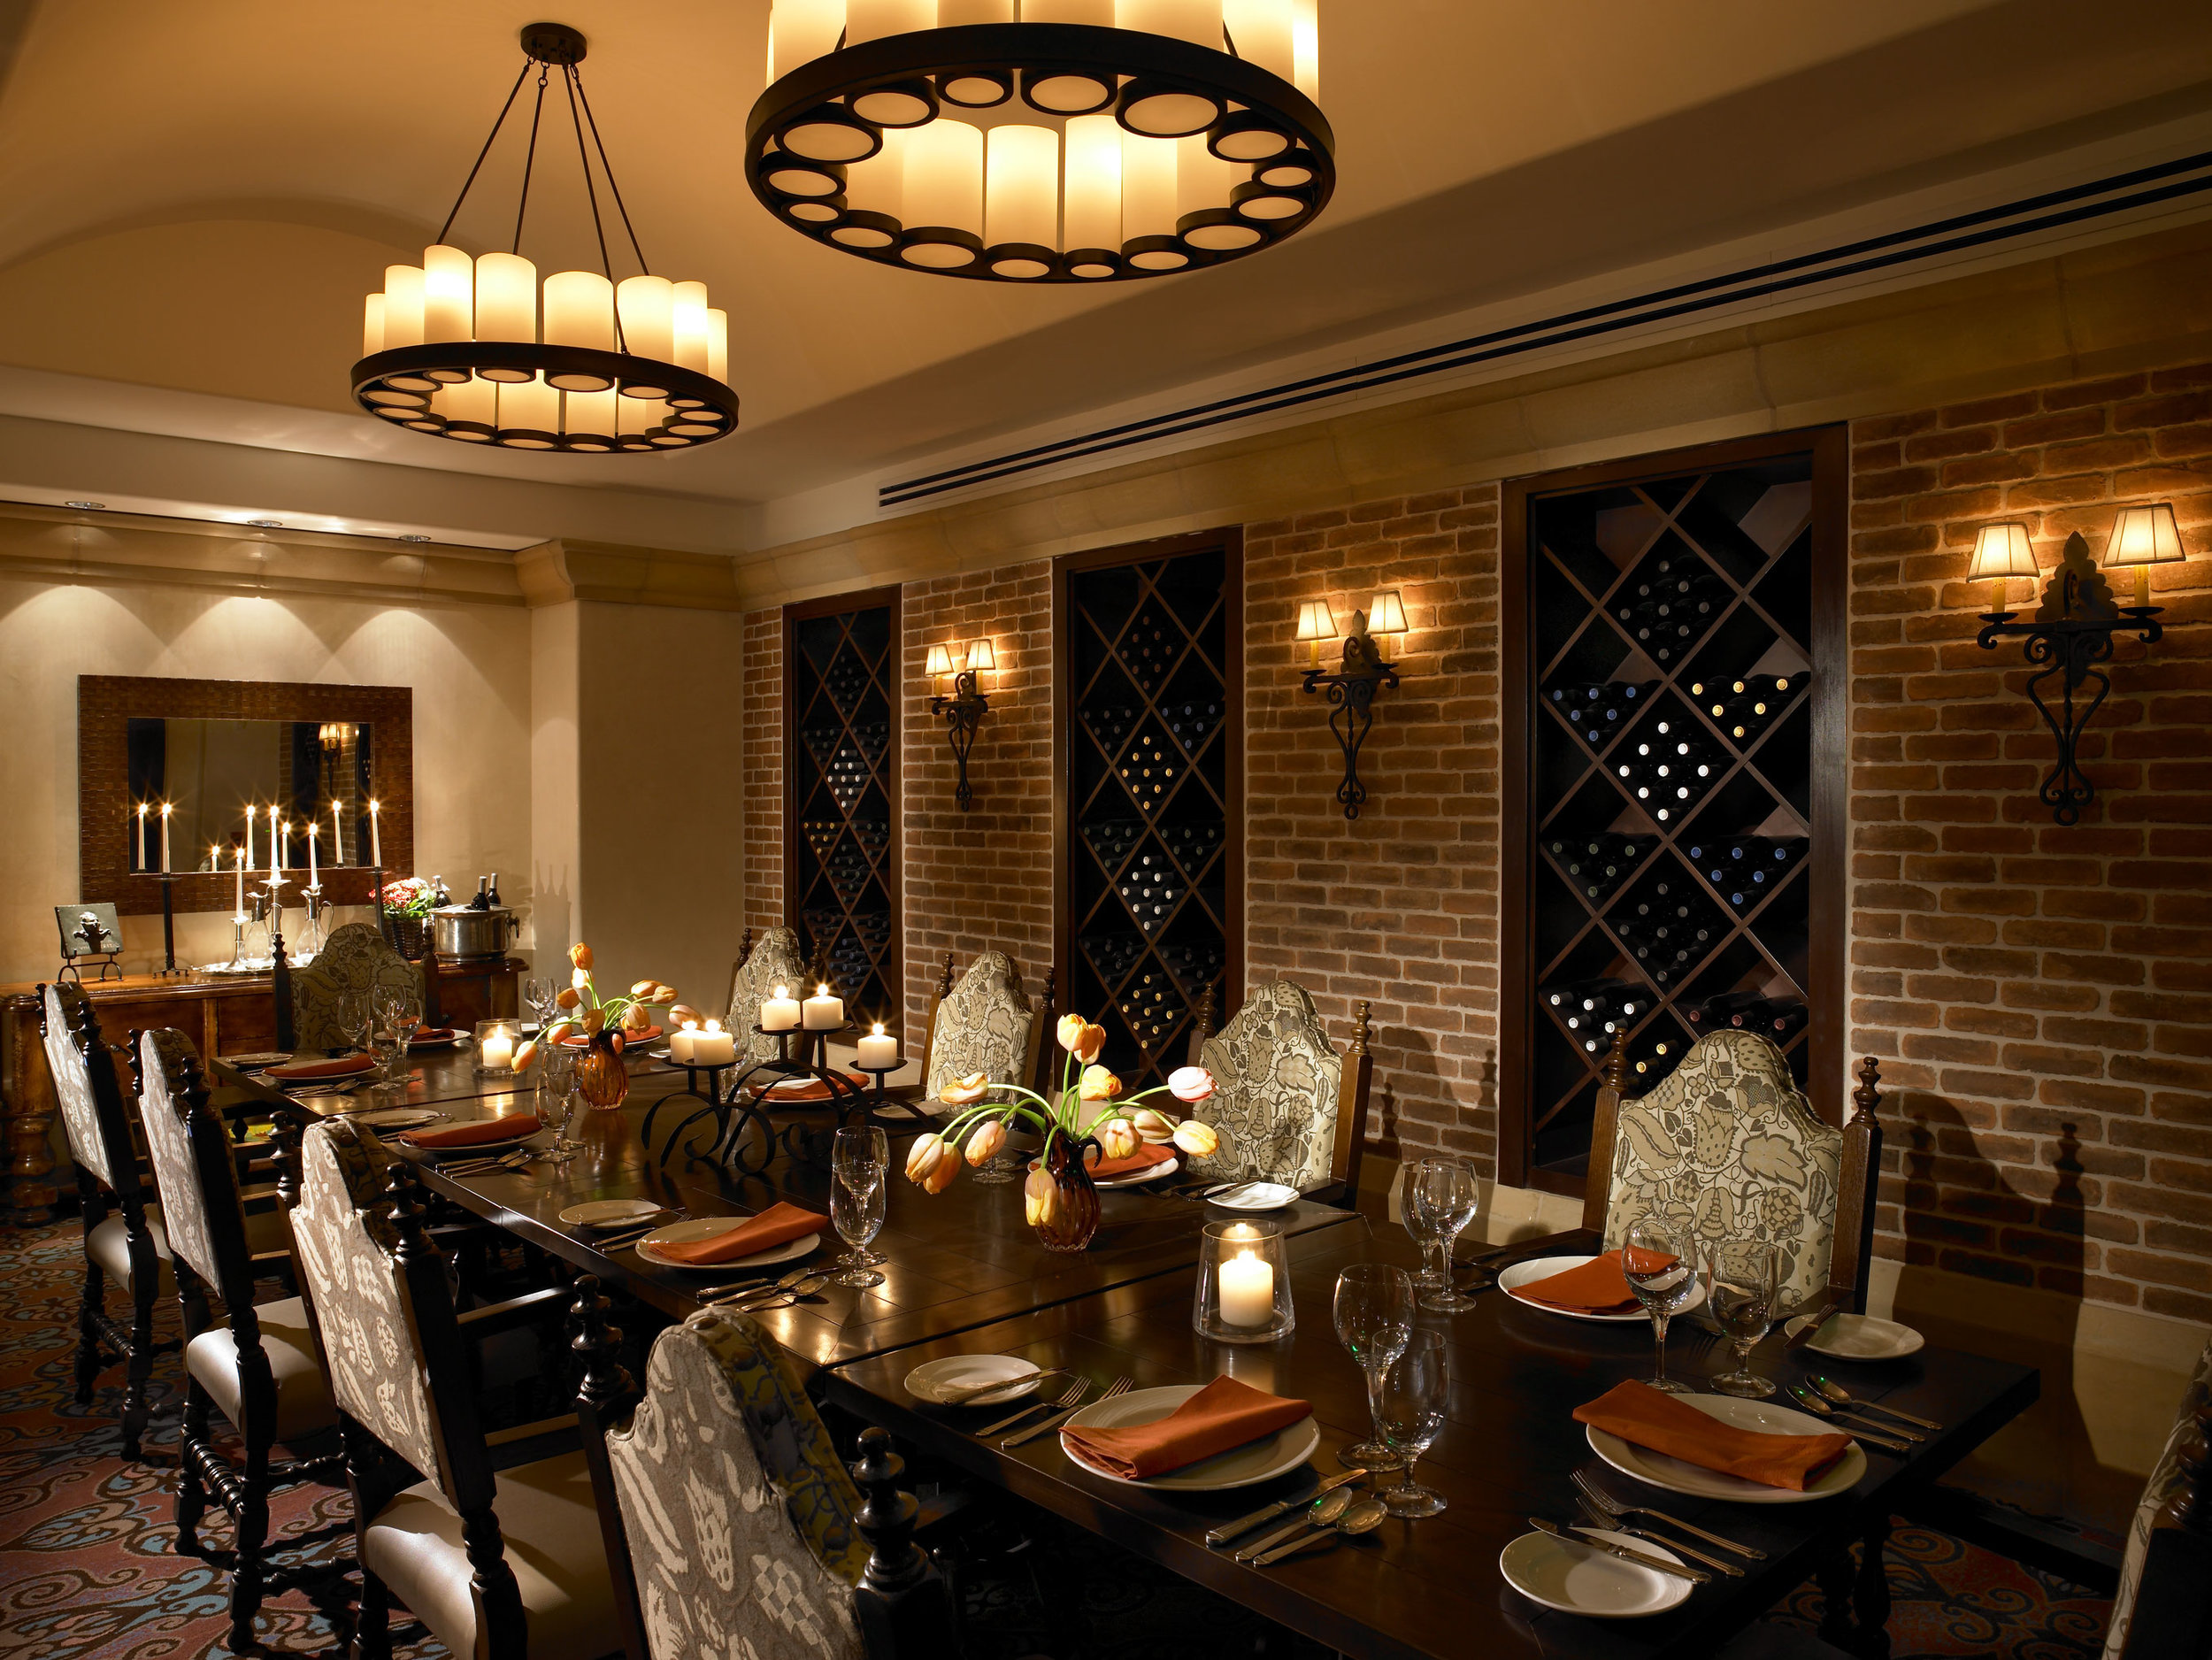 La Costa Glen: Private Dining